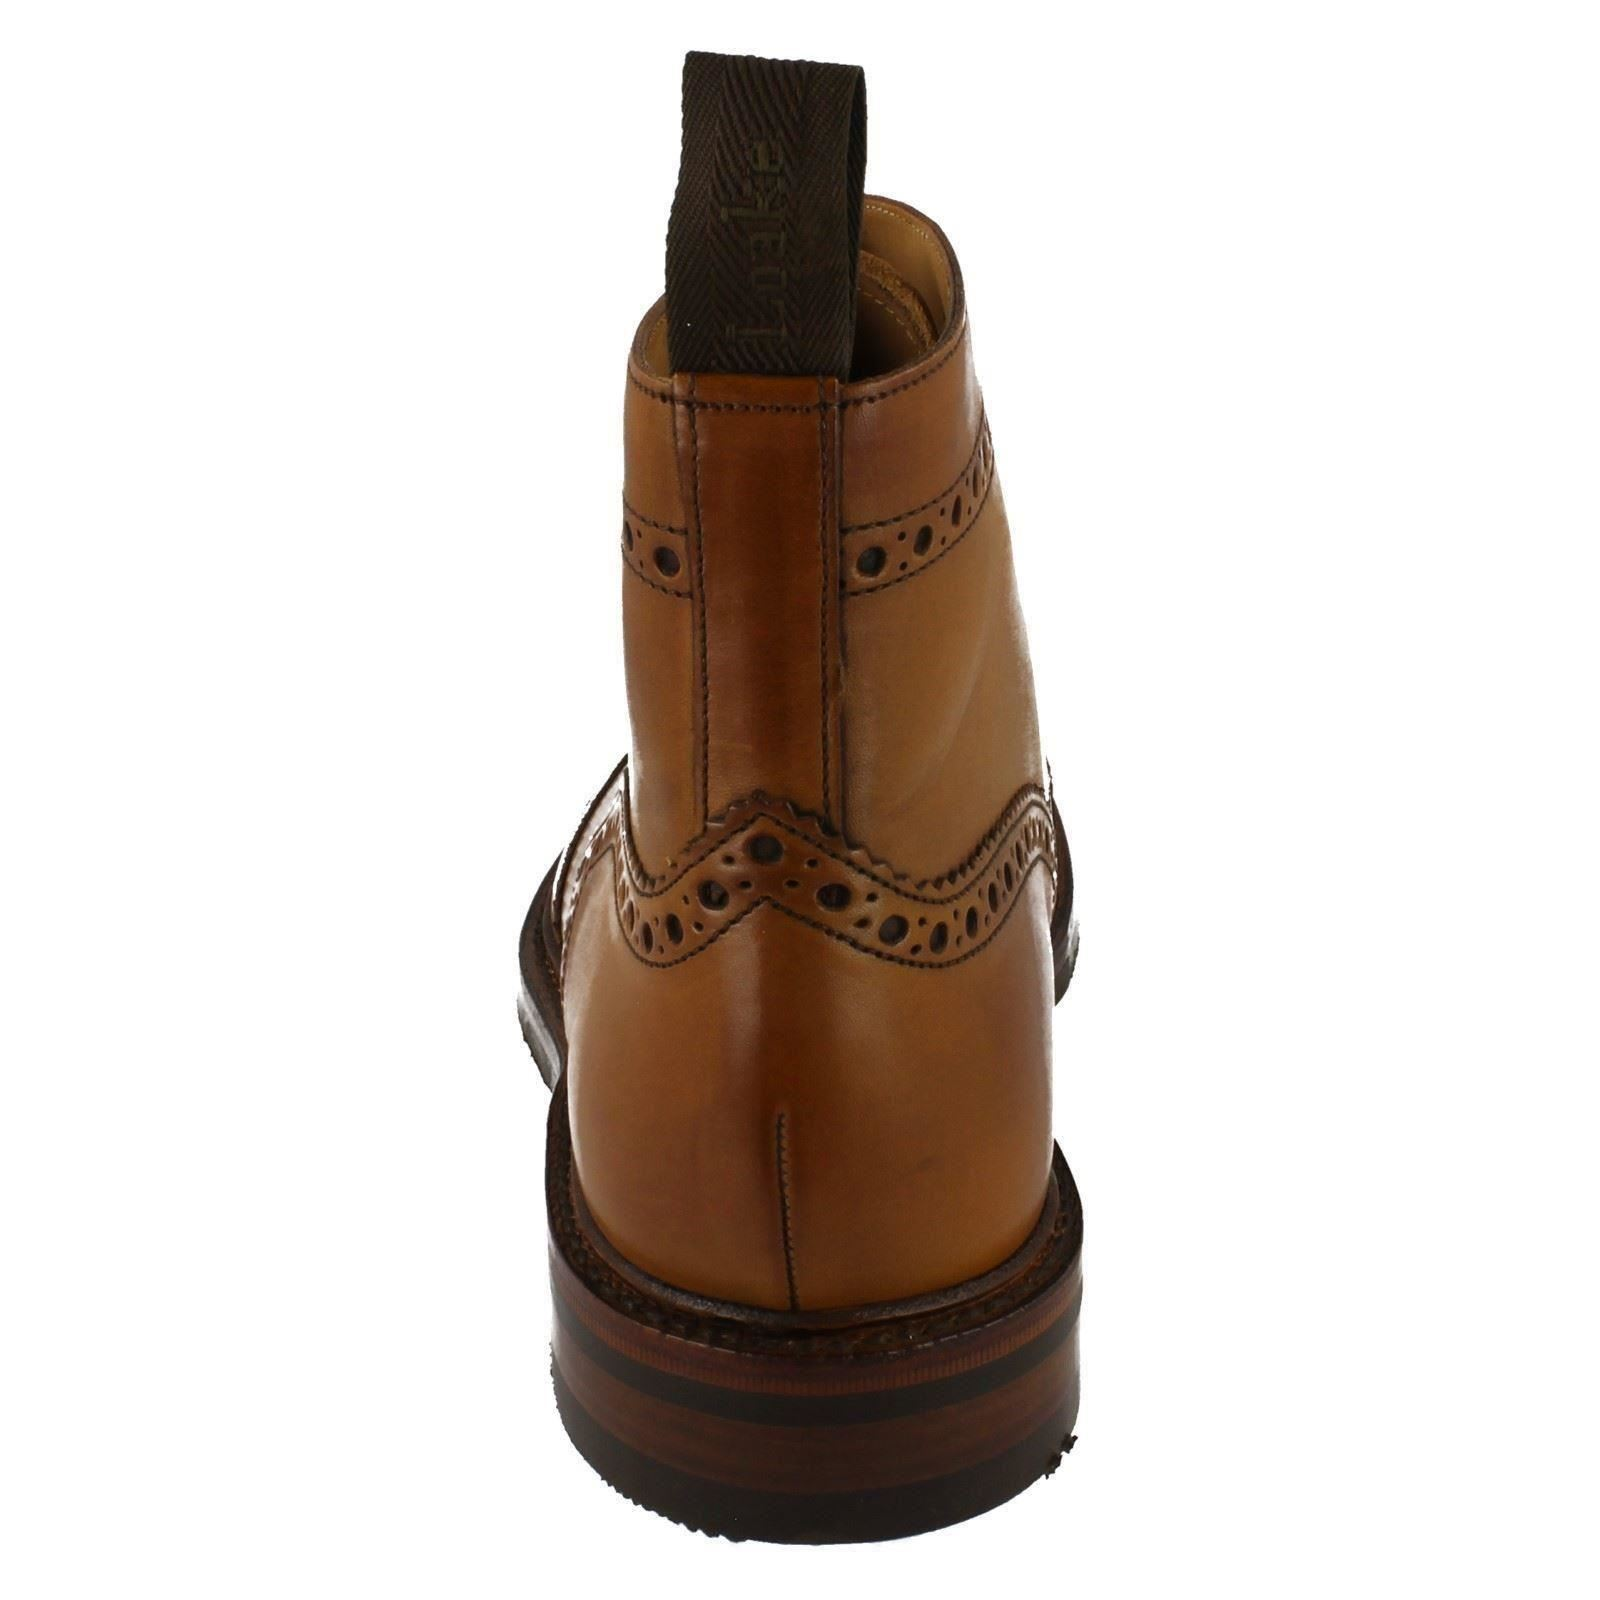 Mens Loake Tan Leather Leather Leather Classic Brogue Design Lace Up Ankle Boots Bedale 39da98